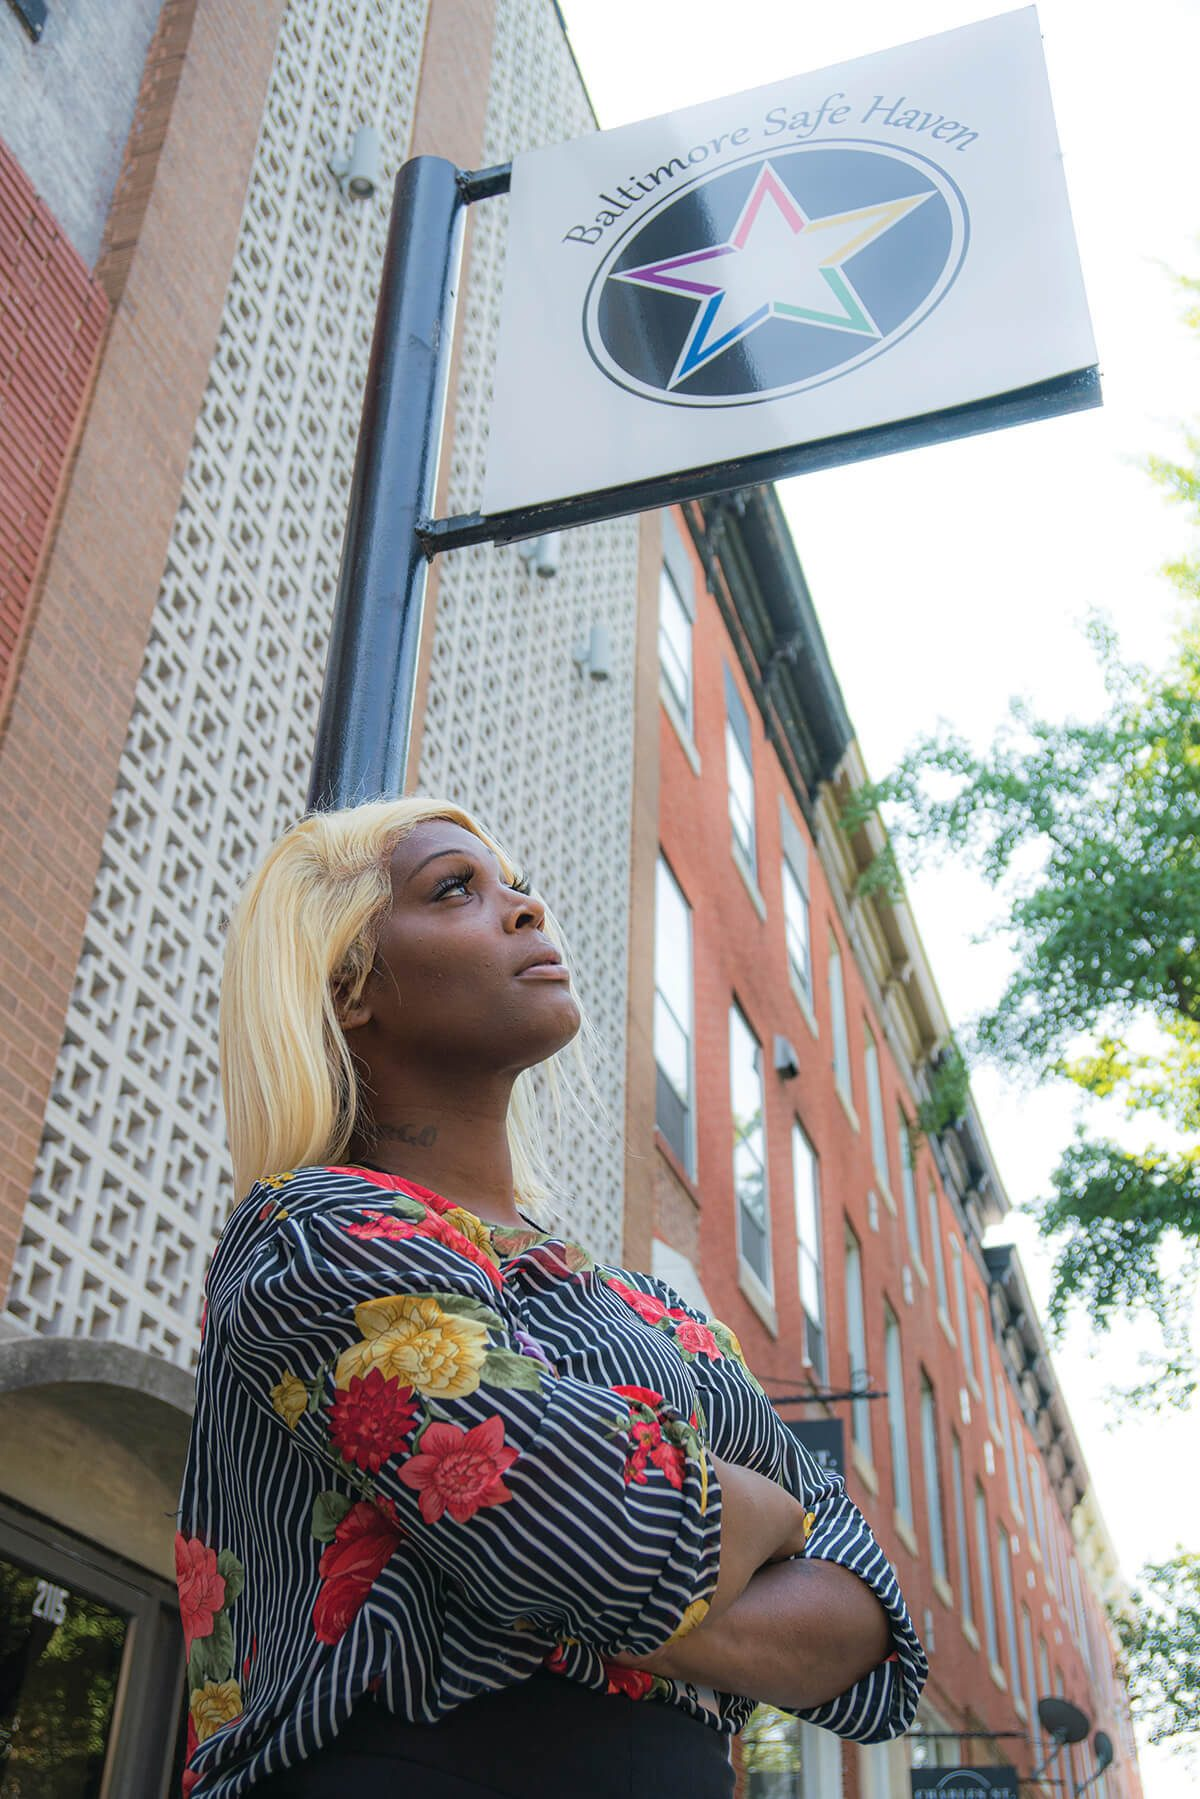 A photo of Iya Dammons in front of Baltimore Safe Haven in Charles Village.